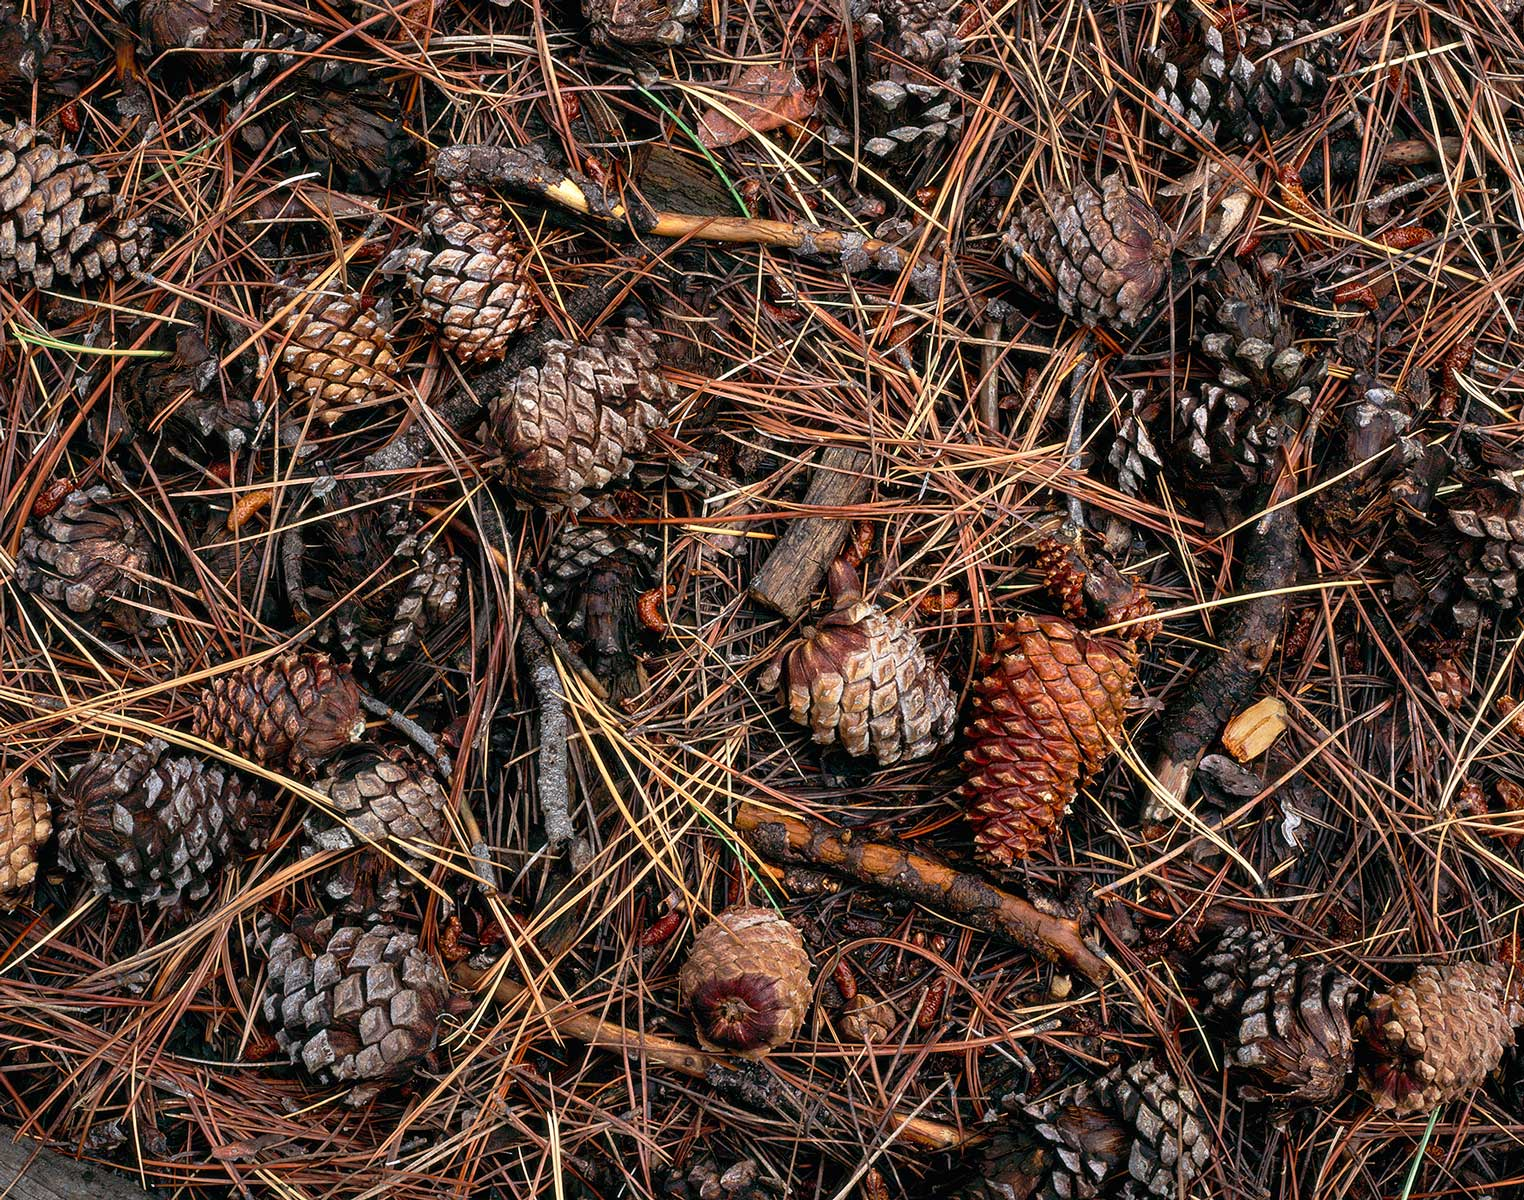 403 Needles and Cones, Kachina Peaks Wilderness, Arizona